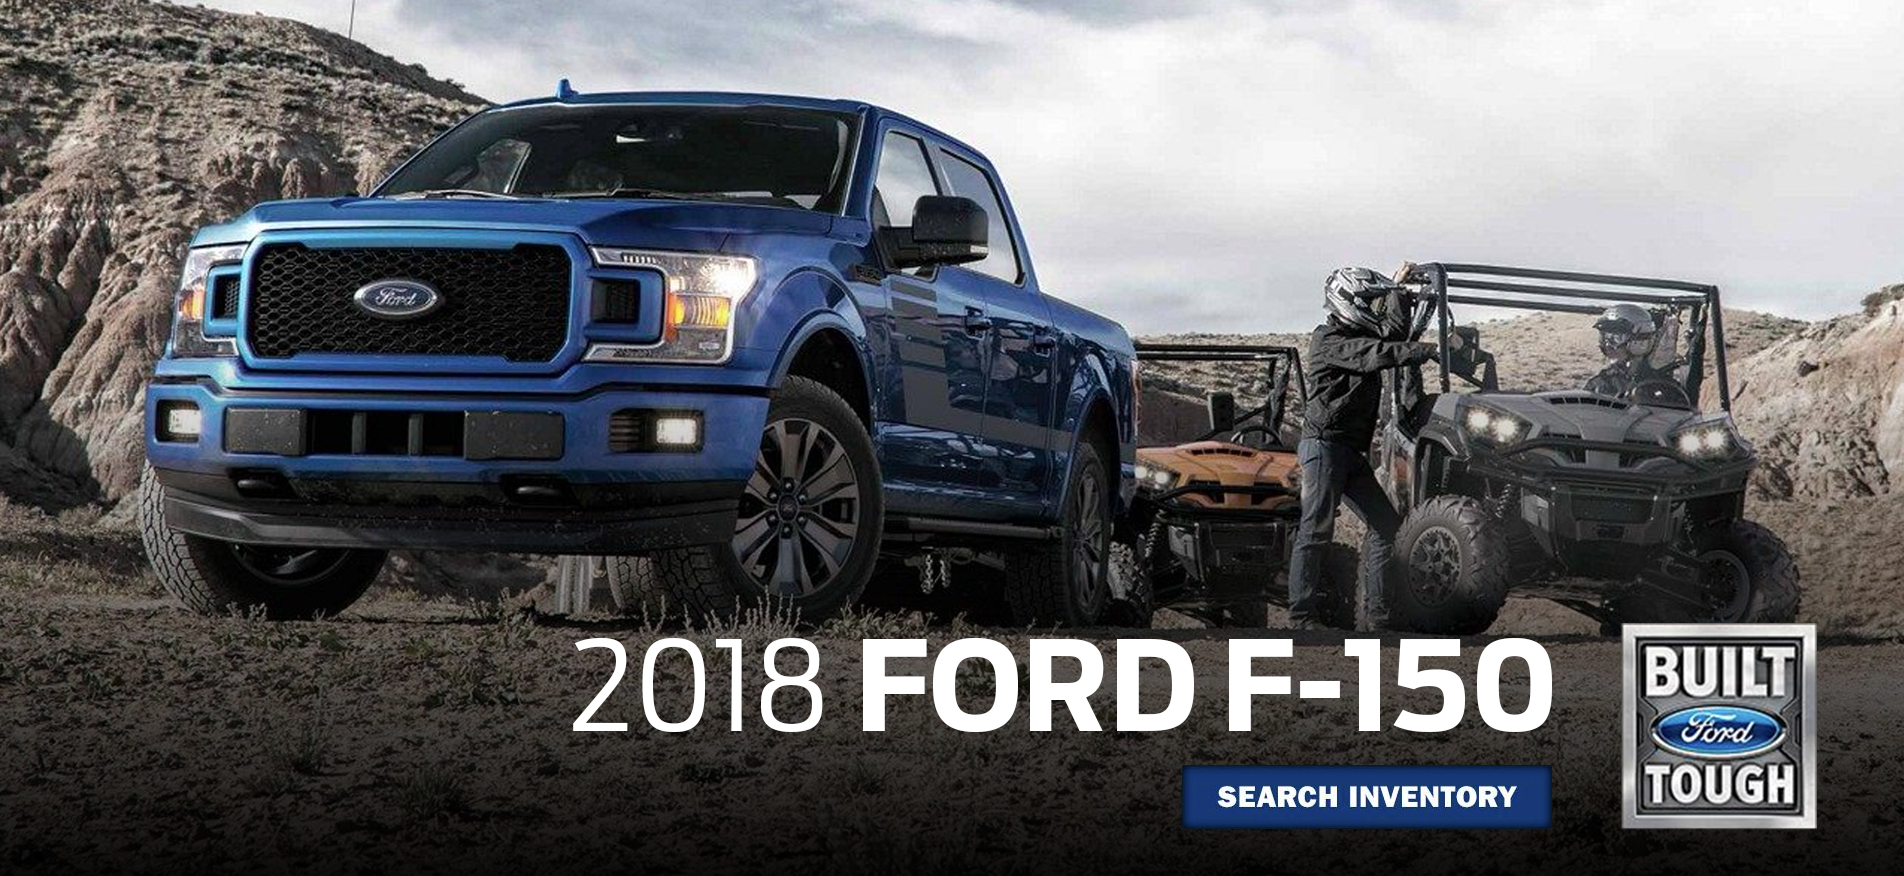 2018 Ford - F150